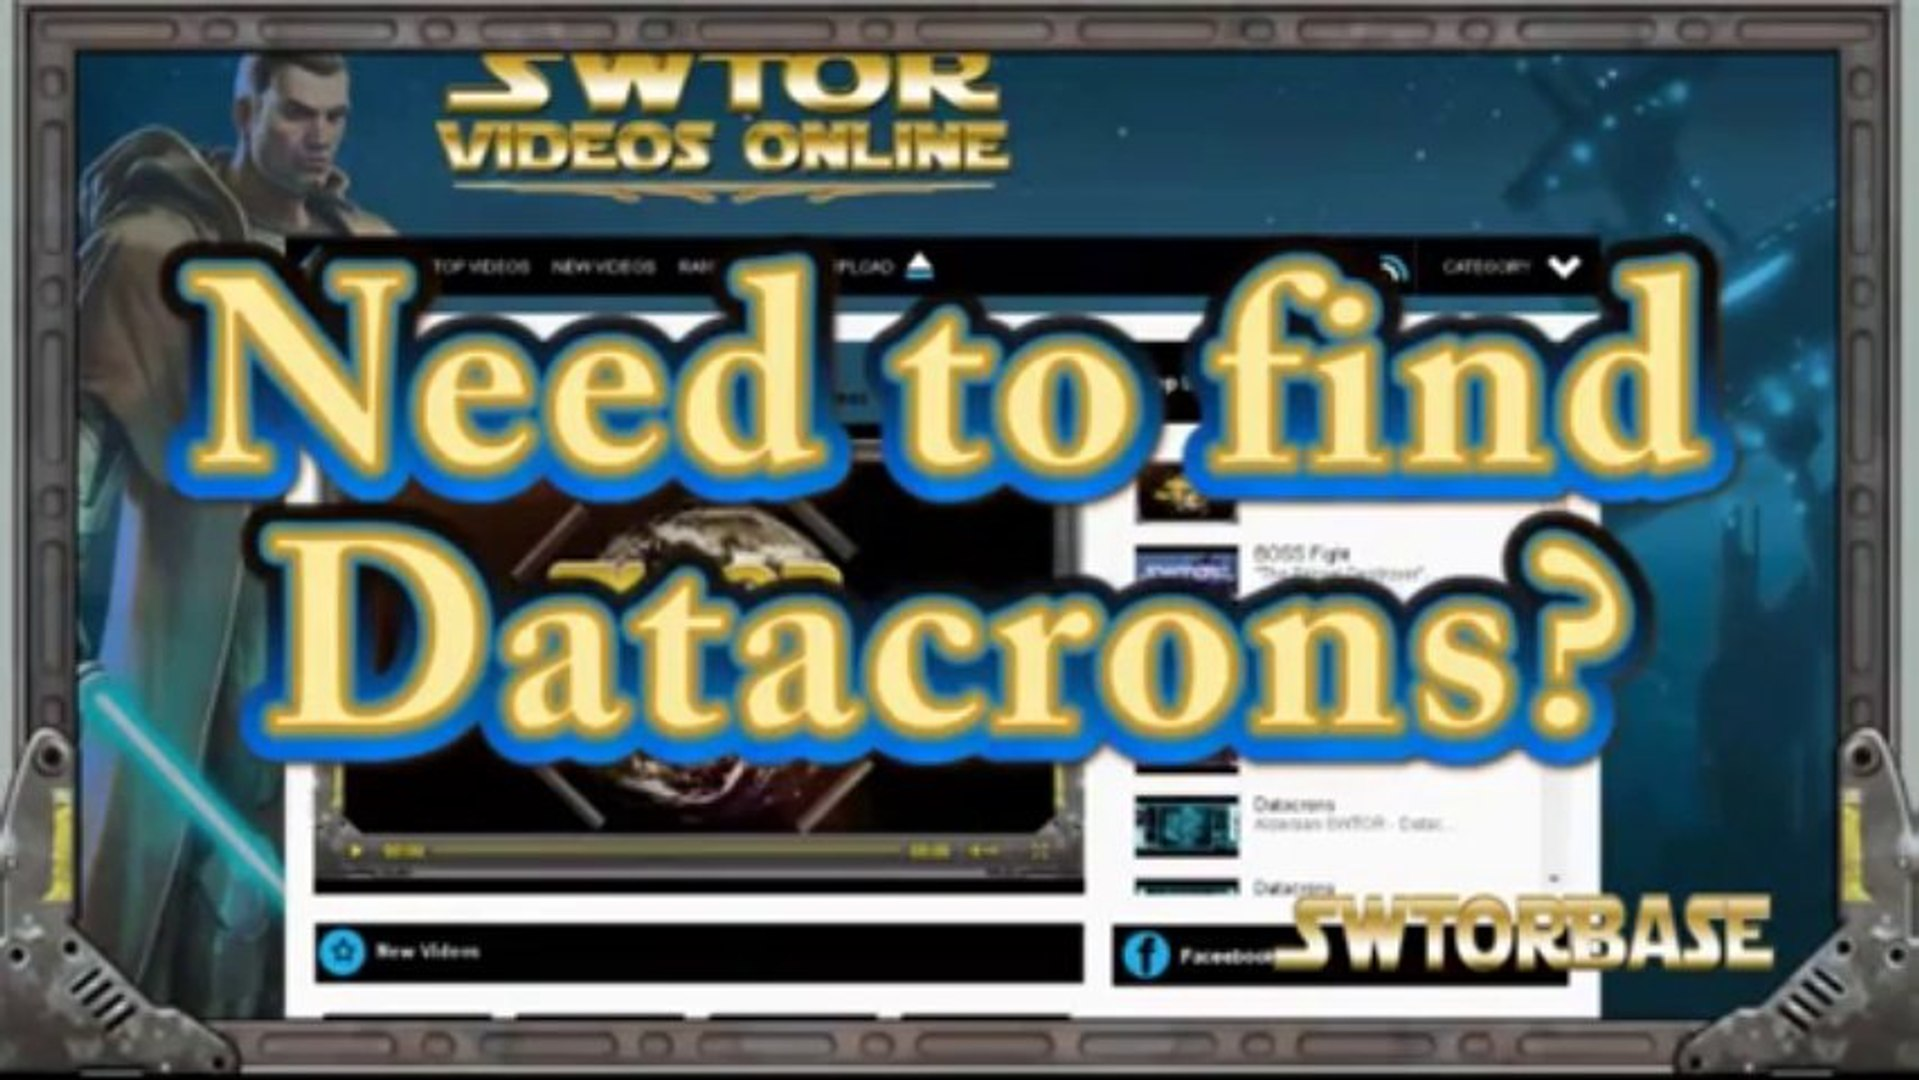 SWTOR Leveling Guide.star wars of the old republic.star wars clone wars.star wars online